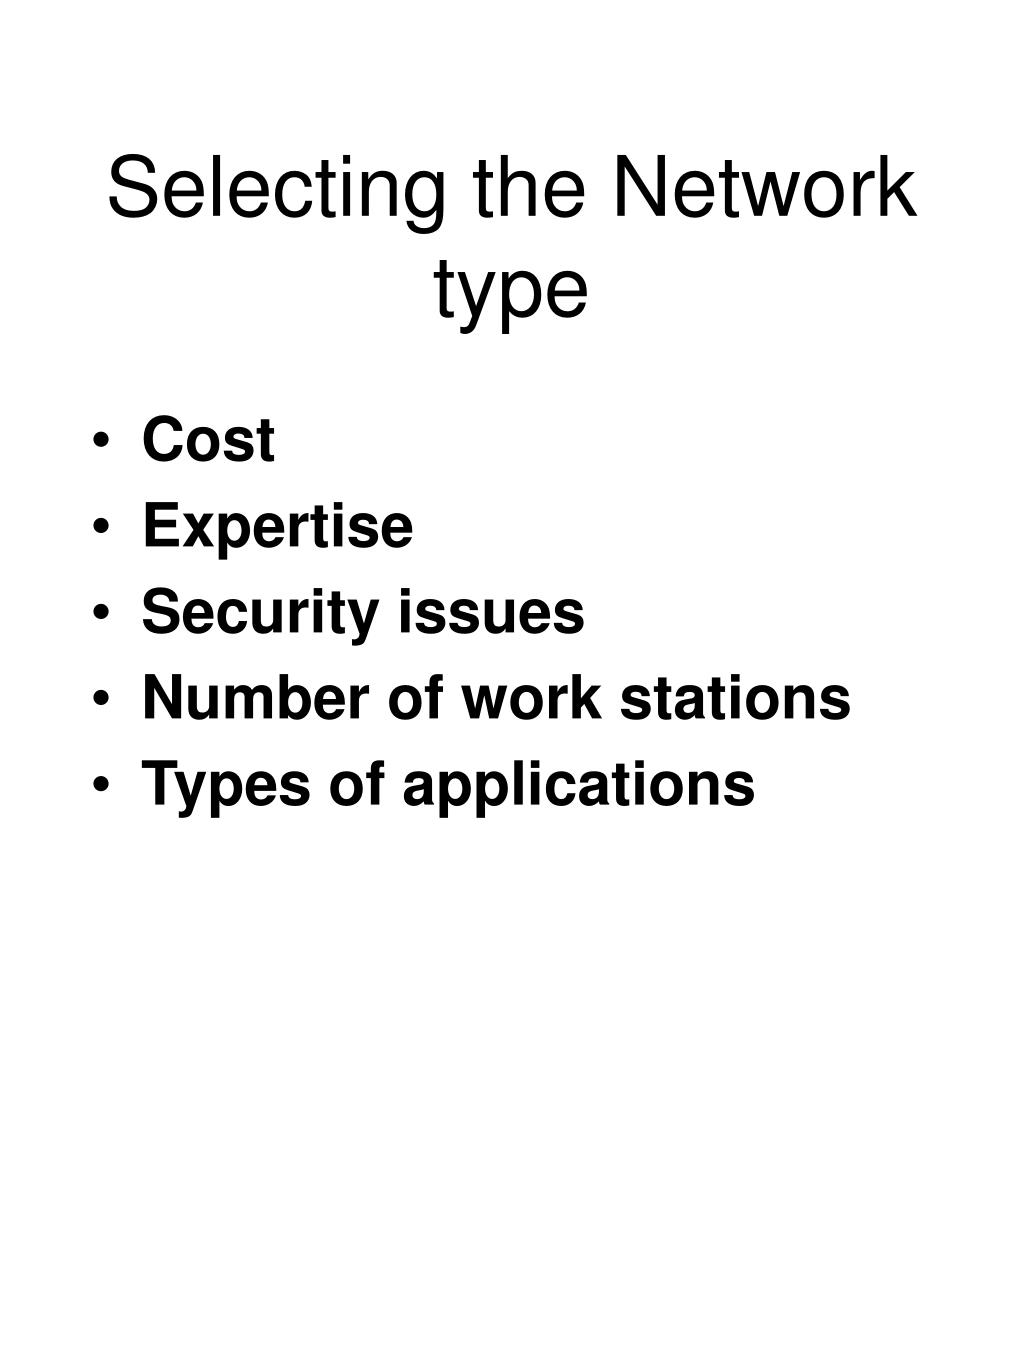 Selecting the Network type